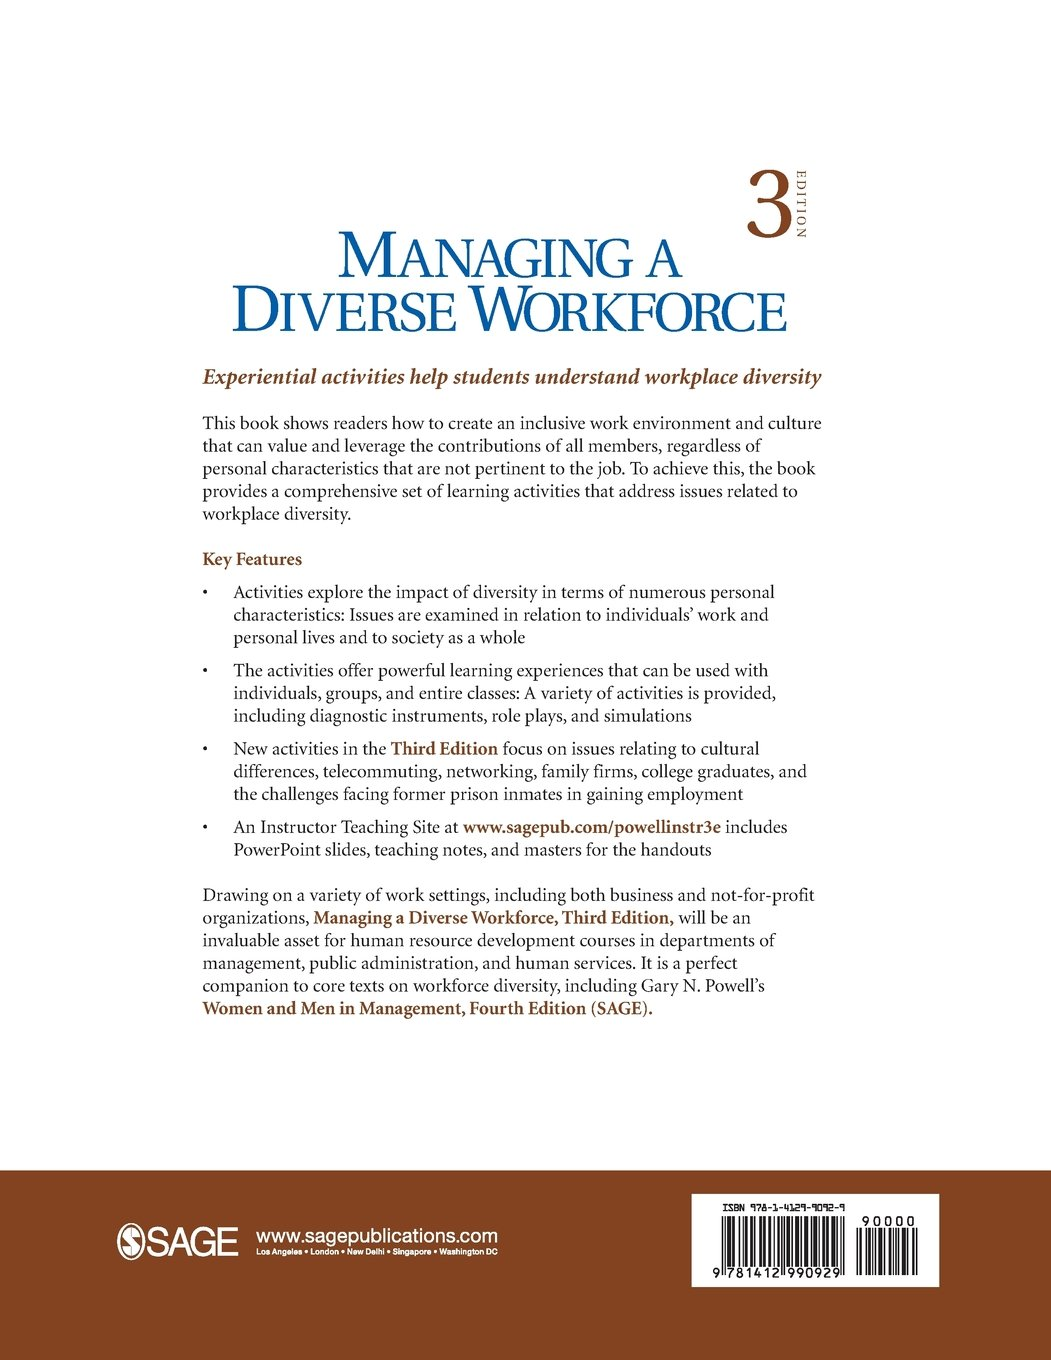 Managing a Diverse Workforce: Learning Activities: Amazon co